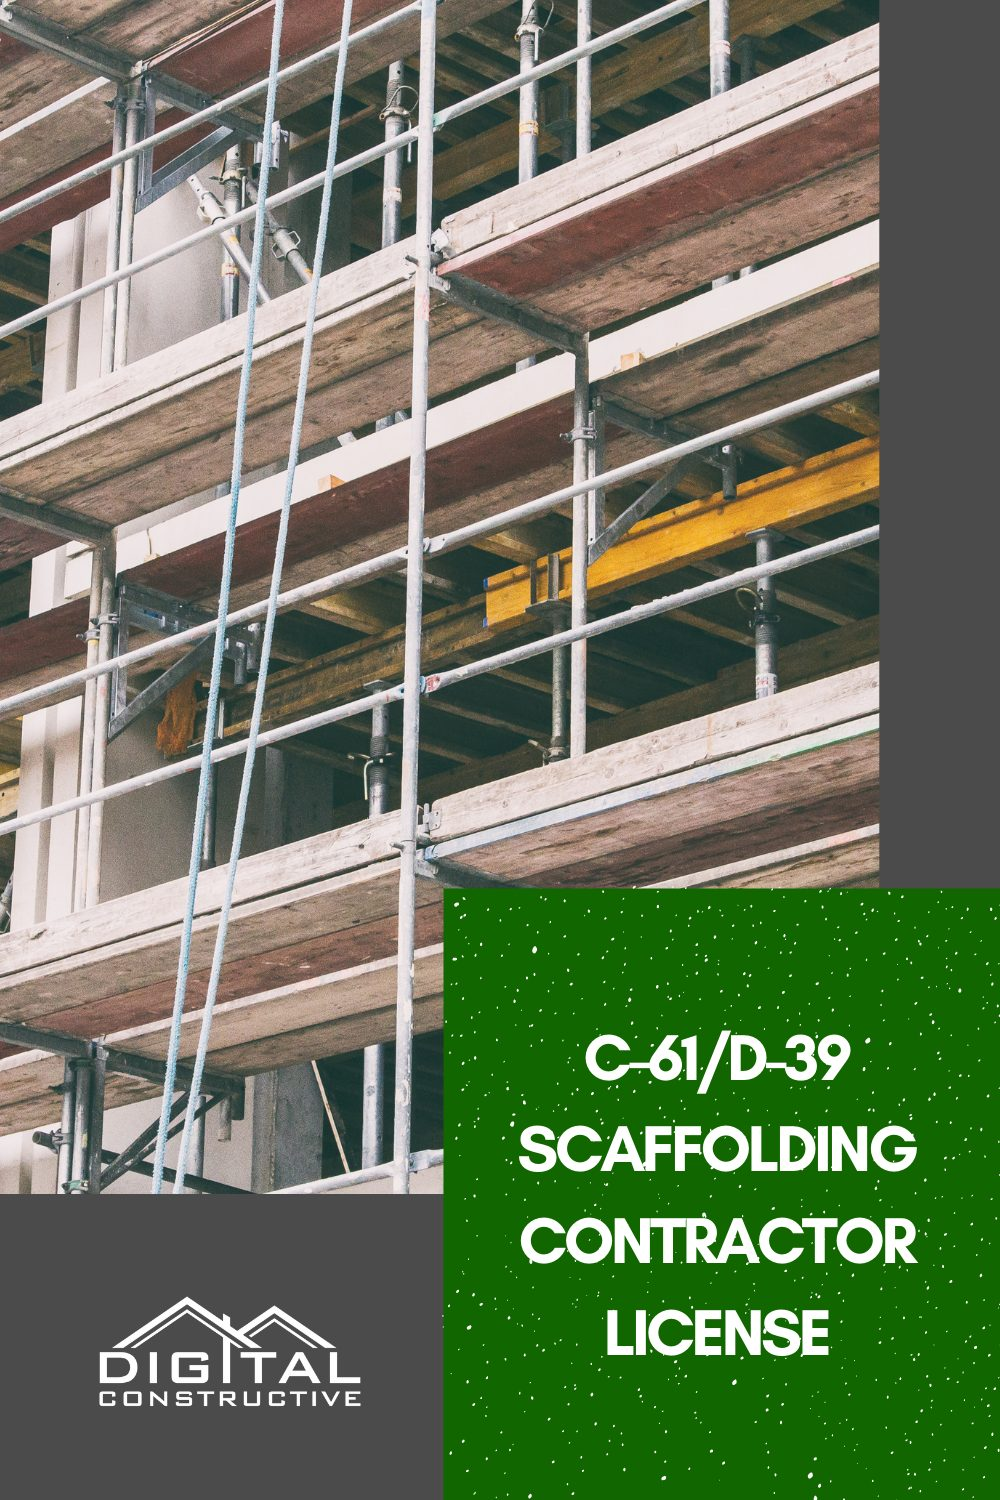 c61 contractors license is the umbrella specialty for the d39 scaffold contractor classificaiton